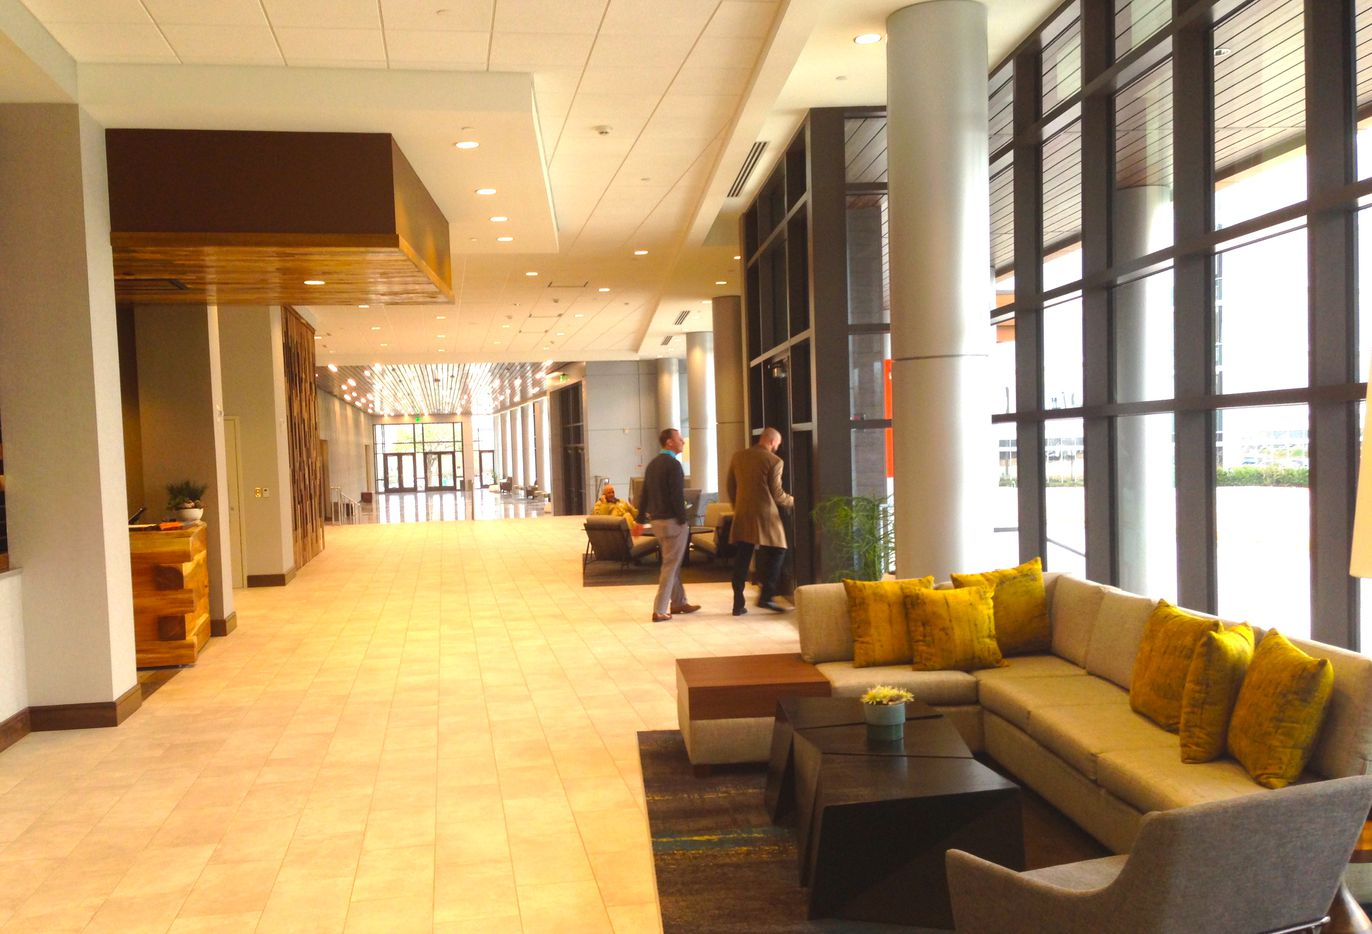 The new Allen Convention Center has 90,000 square feet of meeting space.